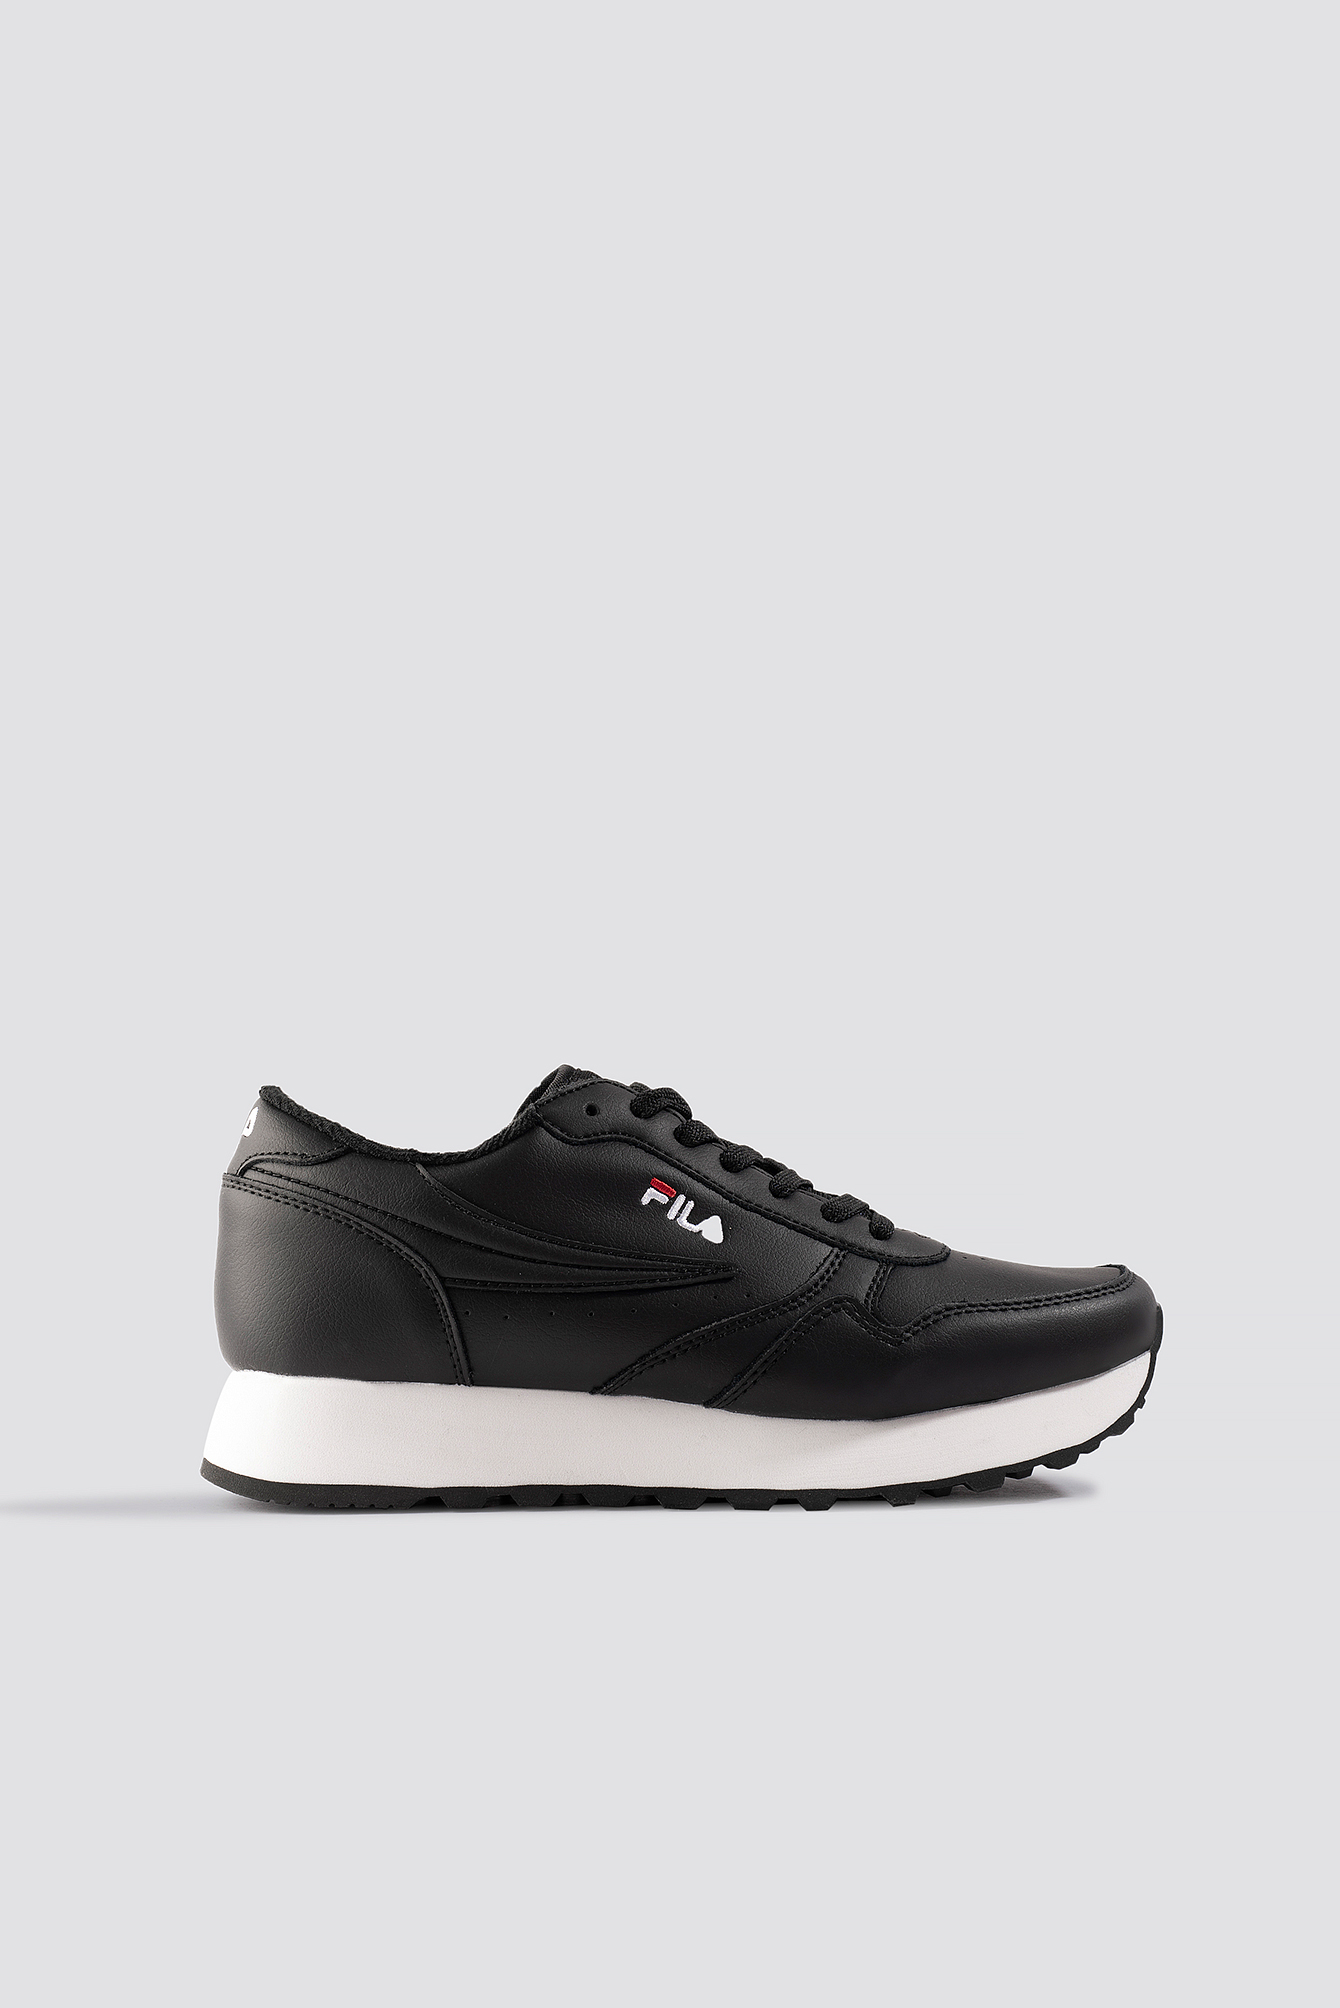 fila -  Orbit Zeppa L Wmn - Black